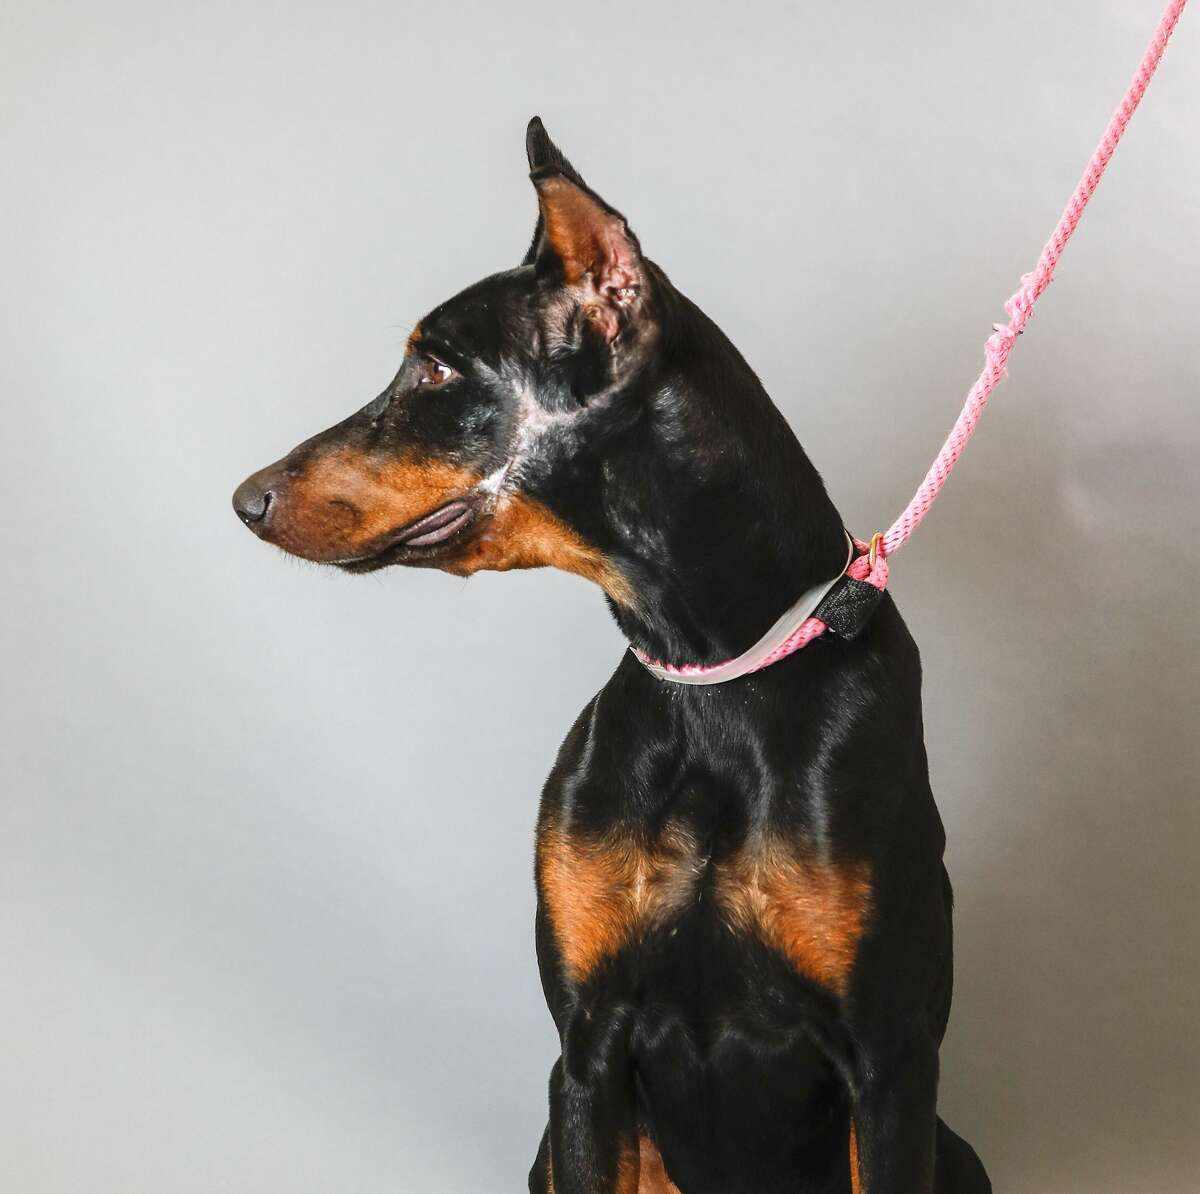 Ali (ID: 42944434) is a 3-year-old, male, Doberman mix available for adoption from the Houston Humane Society. Photographed, Tuesday, Nov. 12, 2019, in Houston. Ali was brought into the Humane Society after being seized from his home, as a result of his owner not seeking veterinary care for a very serious facial injury. He was treated by the vets in their wellness clinic, and received 40 stitches to repair his wound. It has taken him weeks to recover and now he is finally deemed ready to find his forever home. He knows how to sit, enjoys playtime, and walks well on a leash.